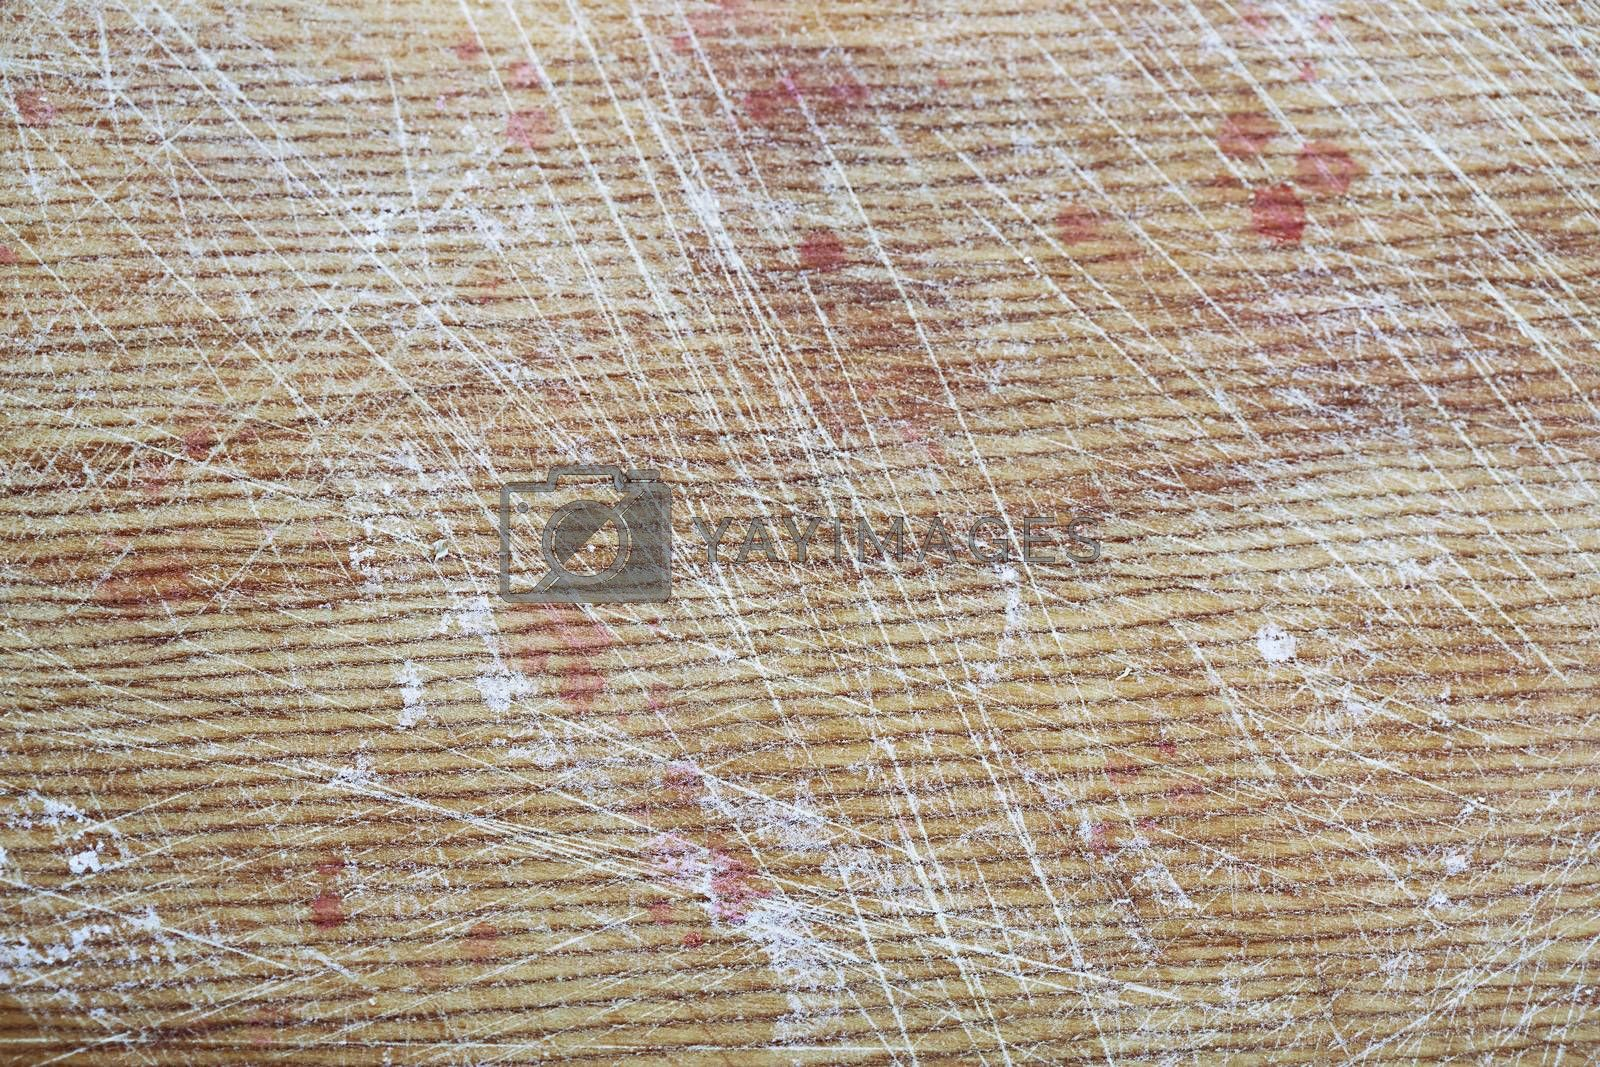 Texture of the scratched wood with blood stains